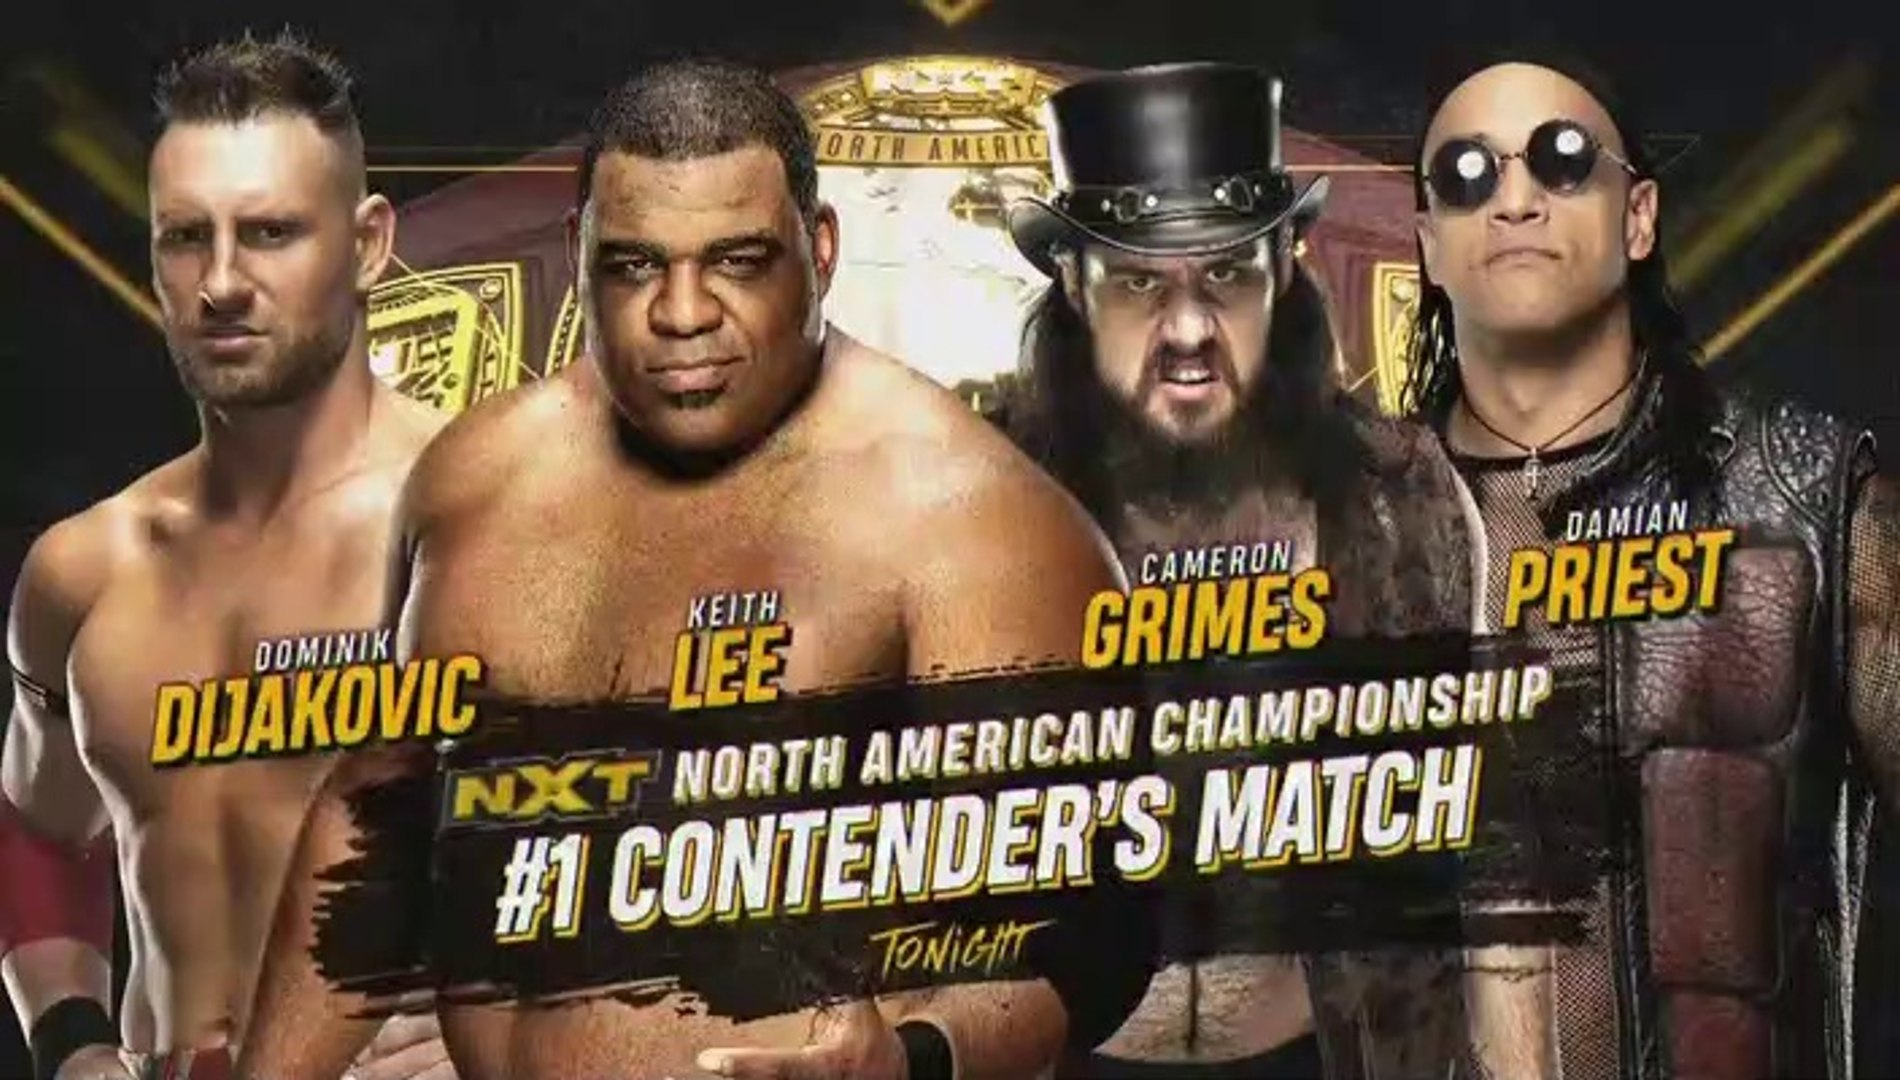 Keith Lee Vs Dominik Dijakovic Vs Cameron Grimes Vs Damian Priest Nxt 08 01 2020 Nxt North American Title 1 Contender Match Video Dailymotion